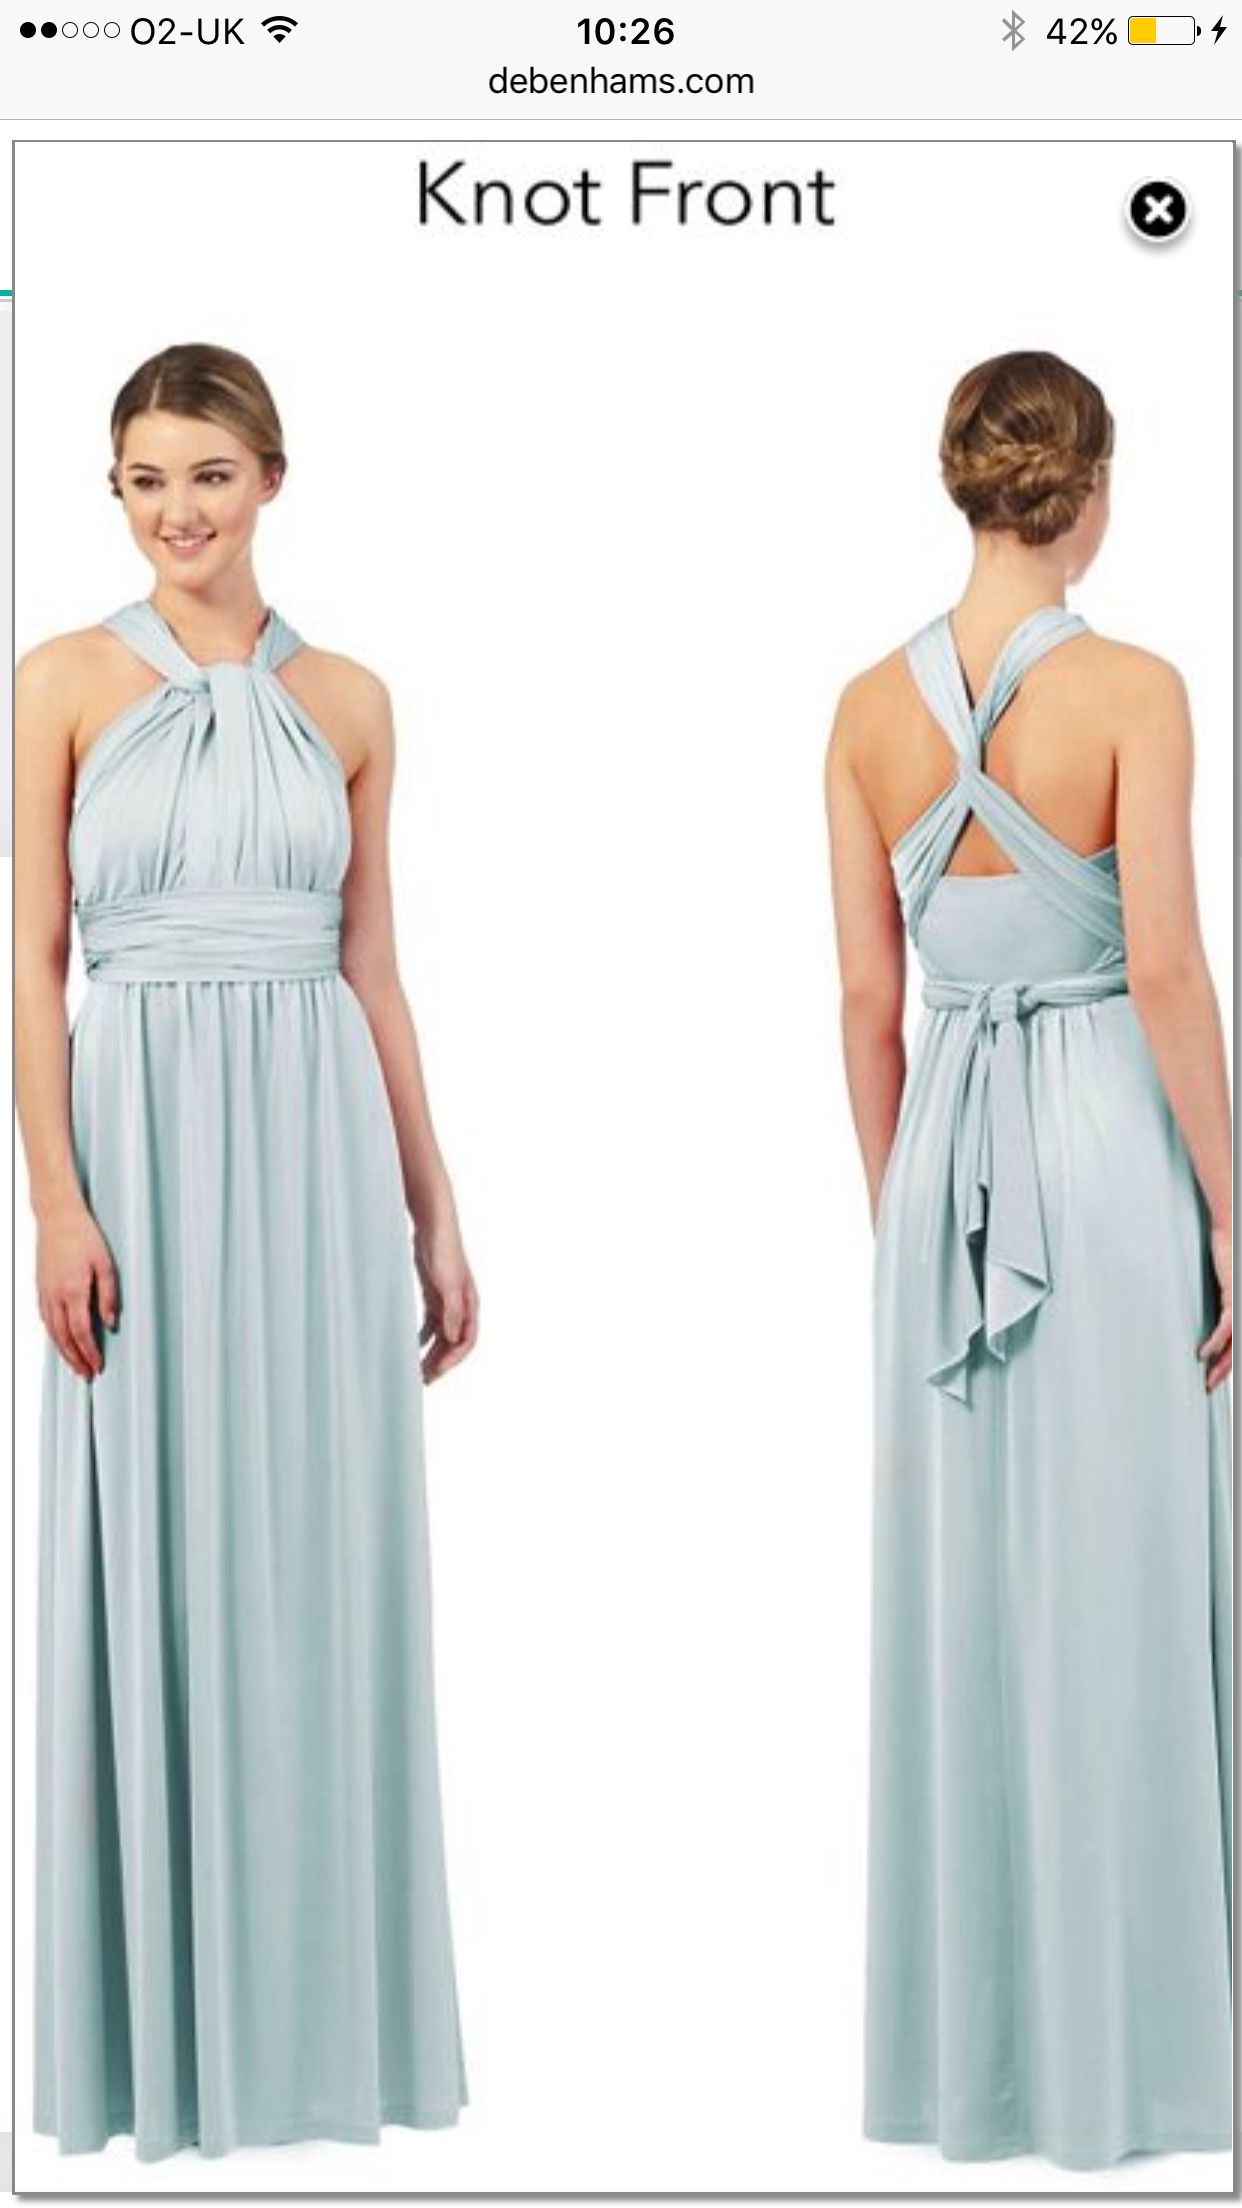 Pin by lara hall bryce on the beggs ibiza wedding pinterest debenhams twist and wrap bridesmaid dresses in antique pink absolutely stunning very good quality and only a fraction of the price of similar designer ones ombrellifo Image collections